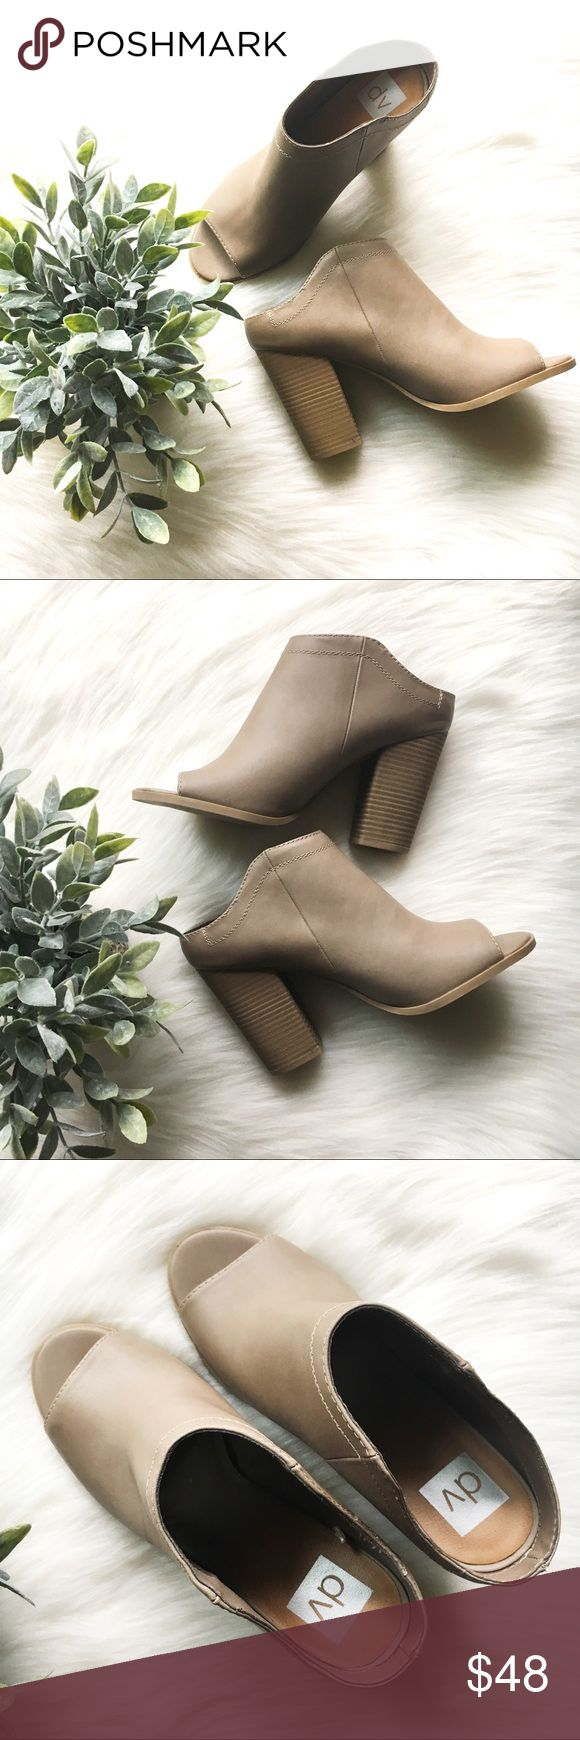 New DV Tan/Camel Mule Sandal Booties NWOB Dolce Vita DV shoes - never worn. Mint condition & flawless. Perfect style to wear for end of summer and into fall. Pair with skinnies and a lightweight kimono to wow everyone! Shoes Mules & Clogs